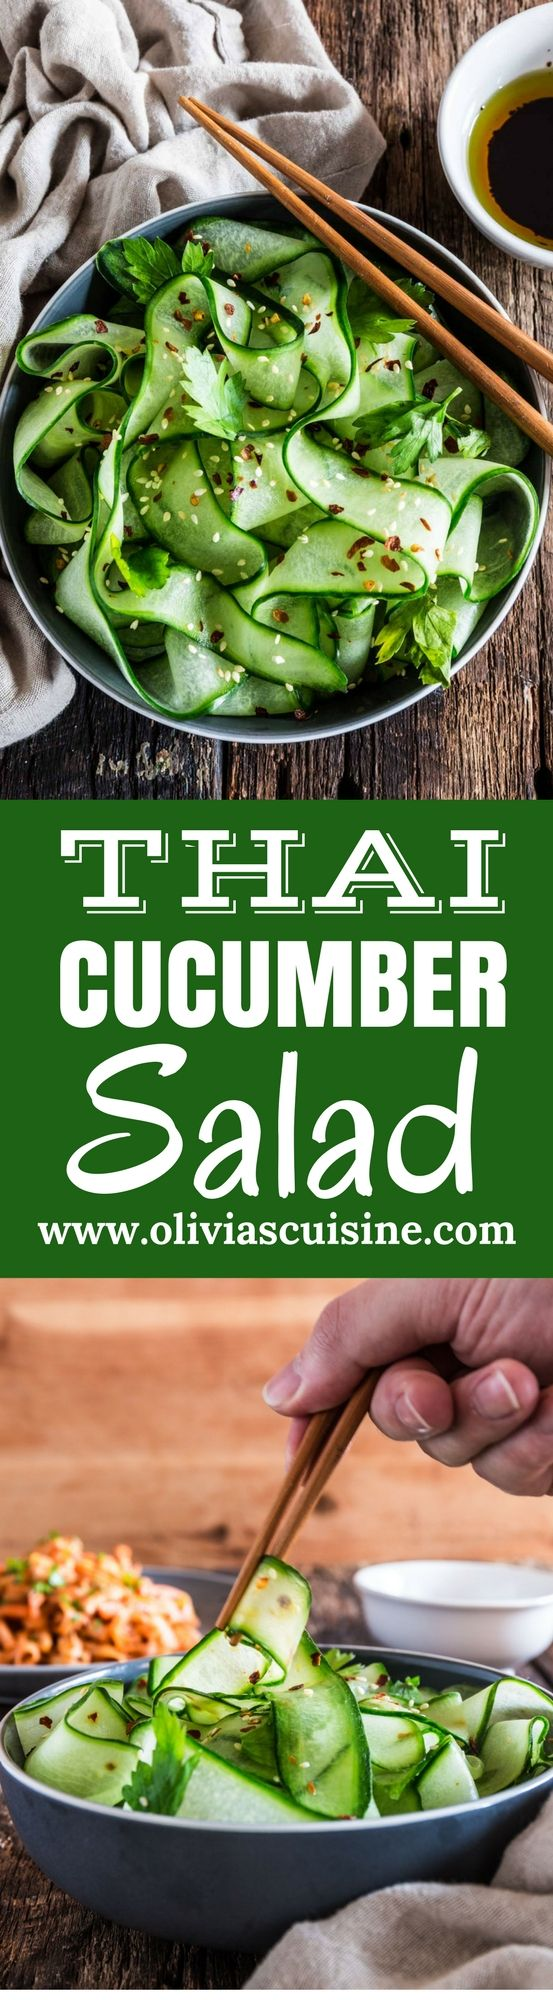 Thai Cucumber Salad with Sesame Ginger Dressing | www.oliviascuisine.com | Some of the best pleasures in life are the simple ones, like this refreshing and light Thai Cucumber Salad. It comes together in less than 5 minutes, so you won't have to miss any second of that sacred summer sunshine! (Recipe by @oliviascuisine.)